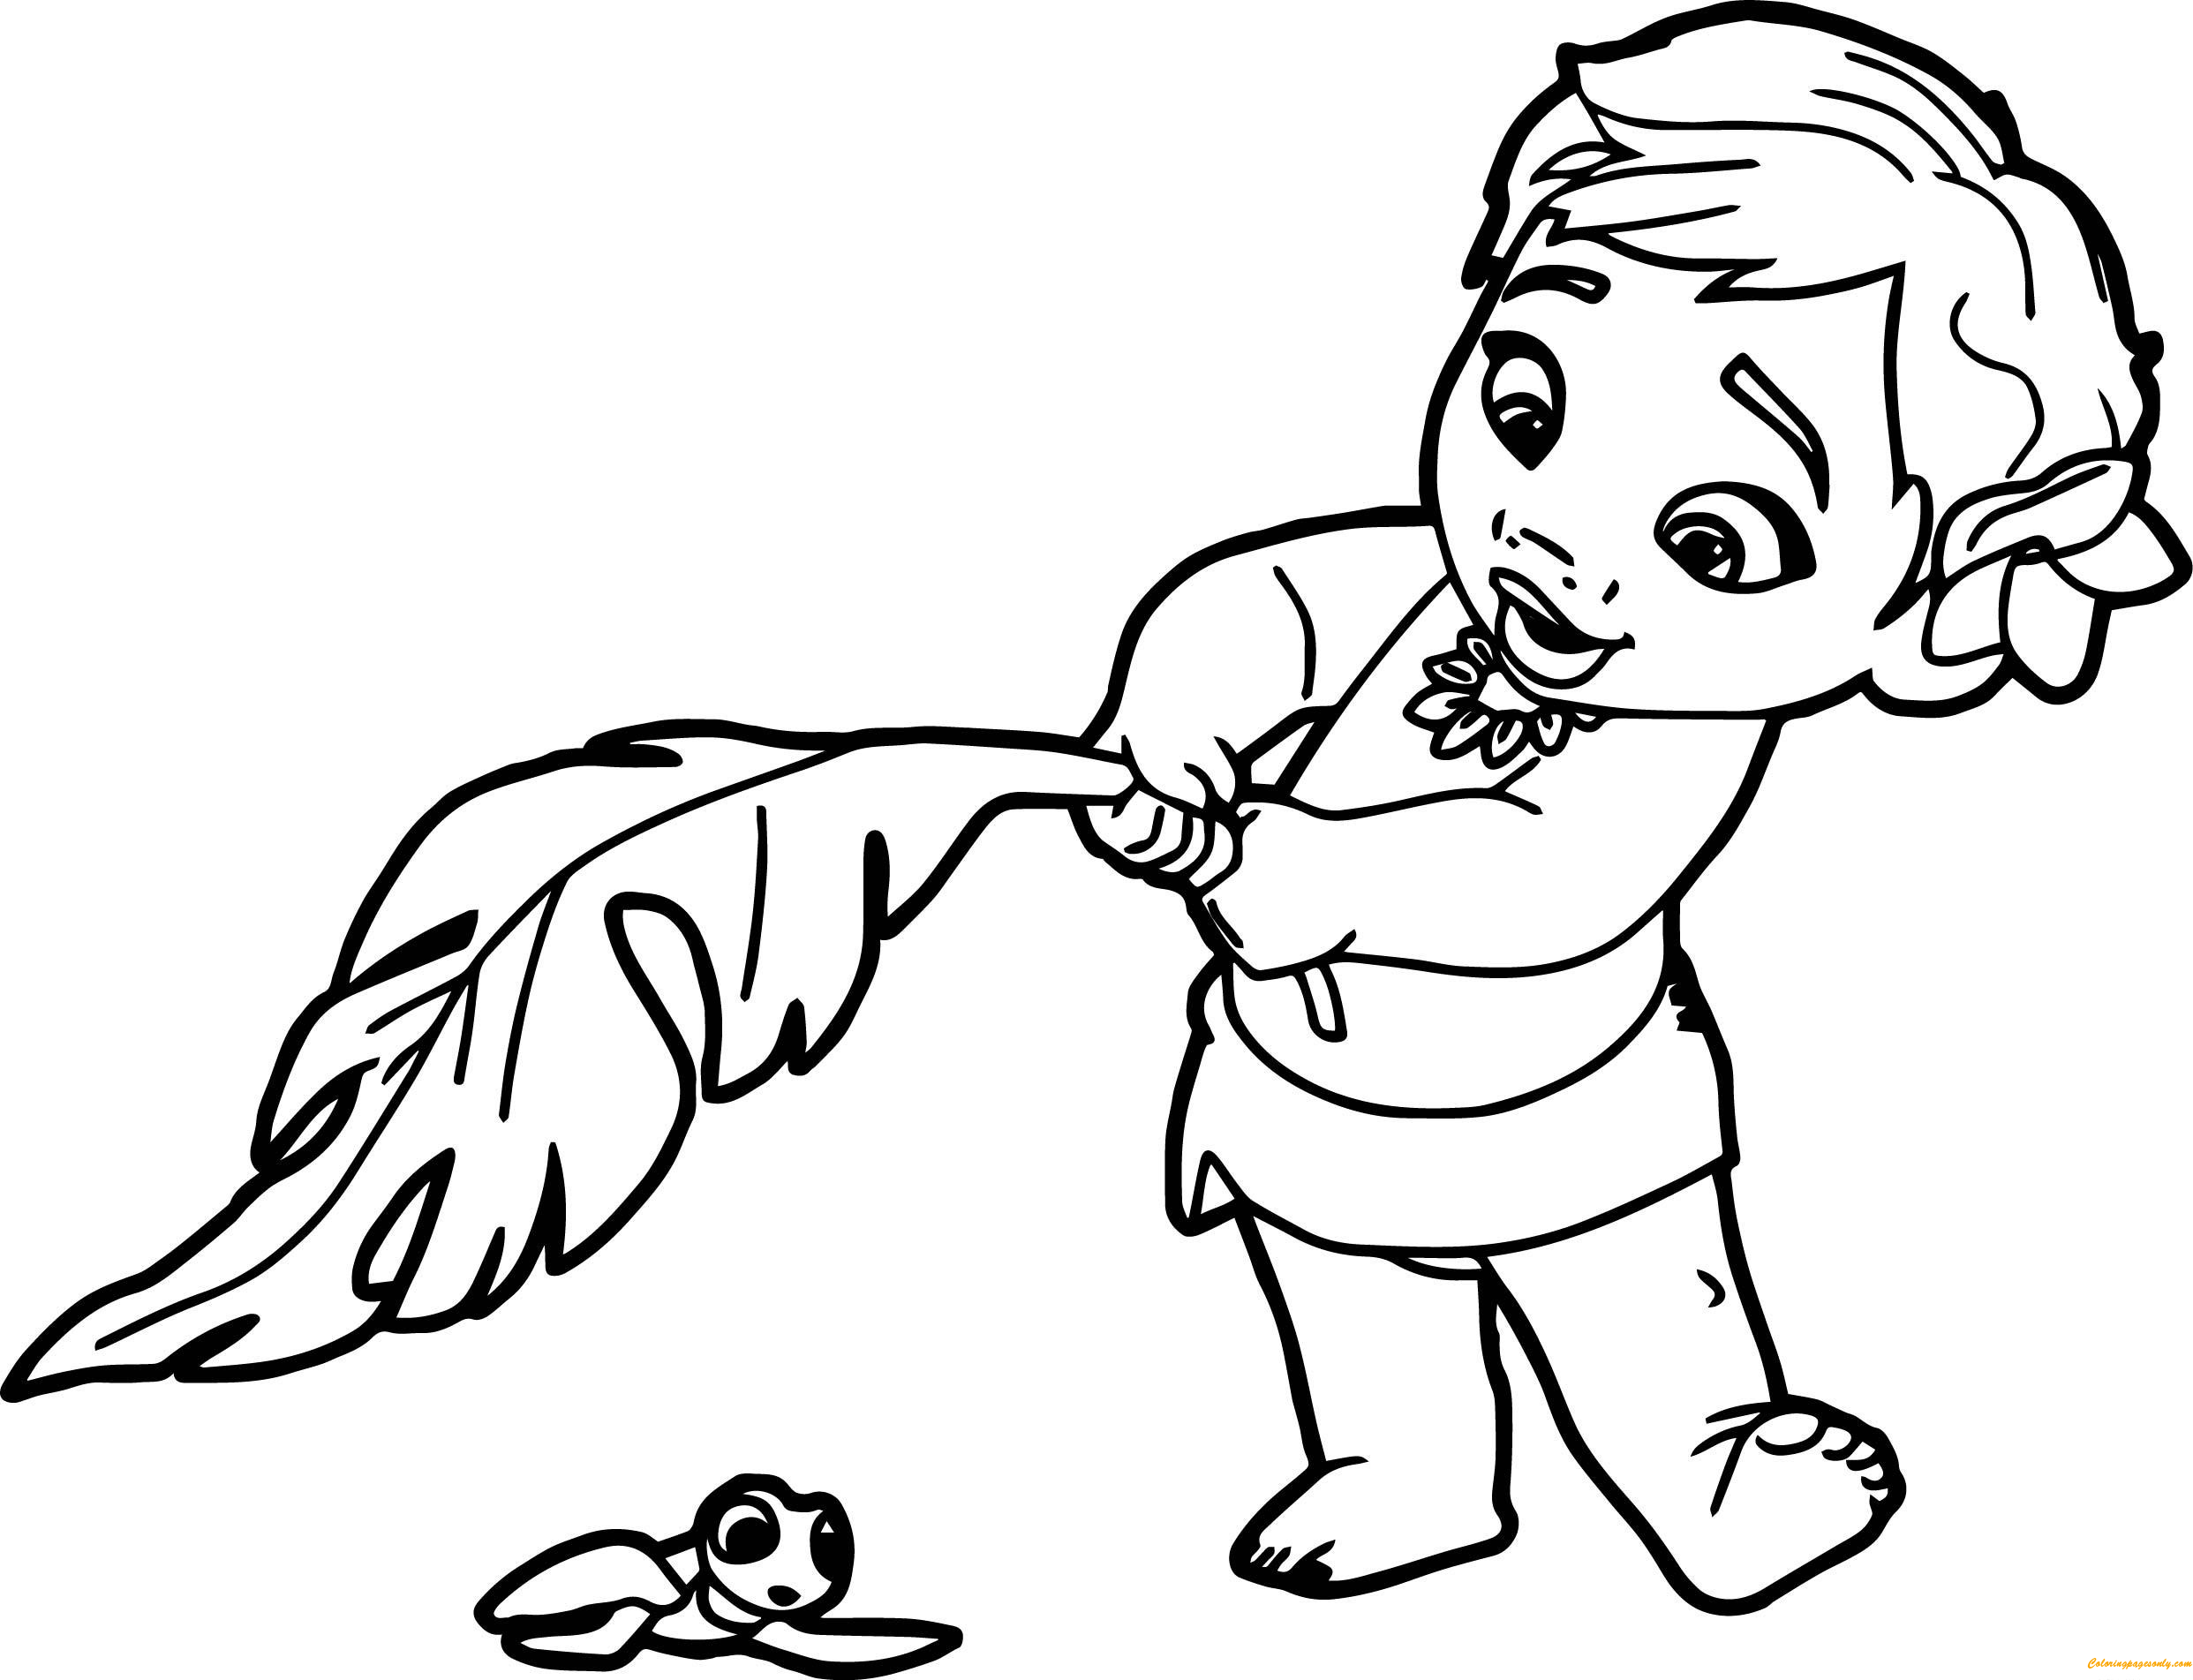 coloring page of a baby. Baby Moana Coloring Page  Free Pages Online